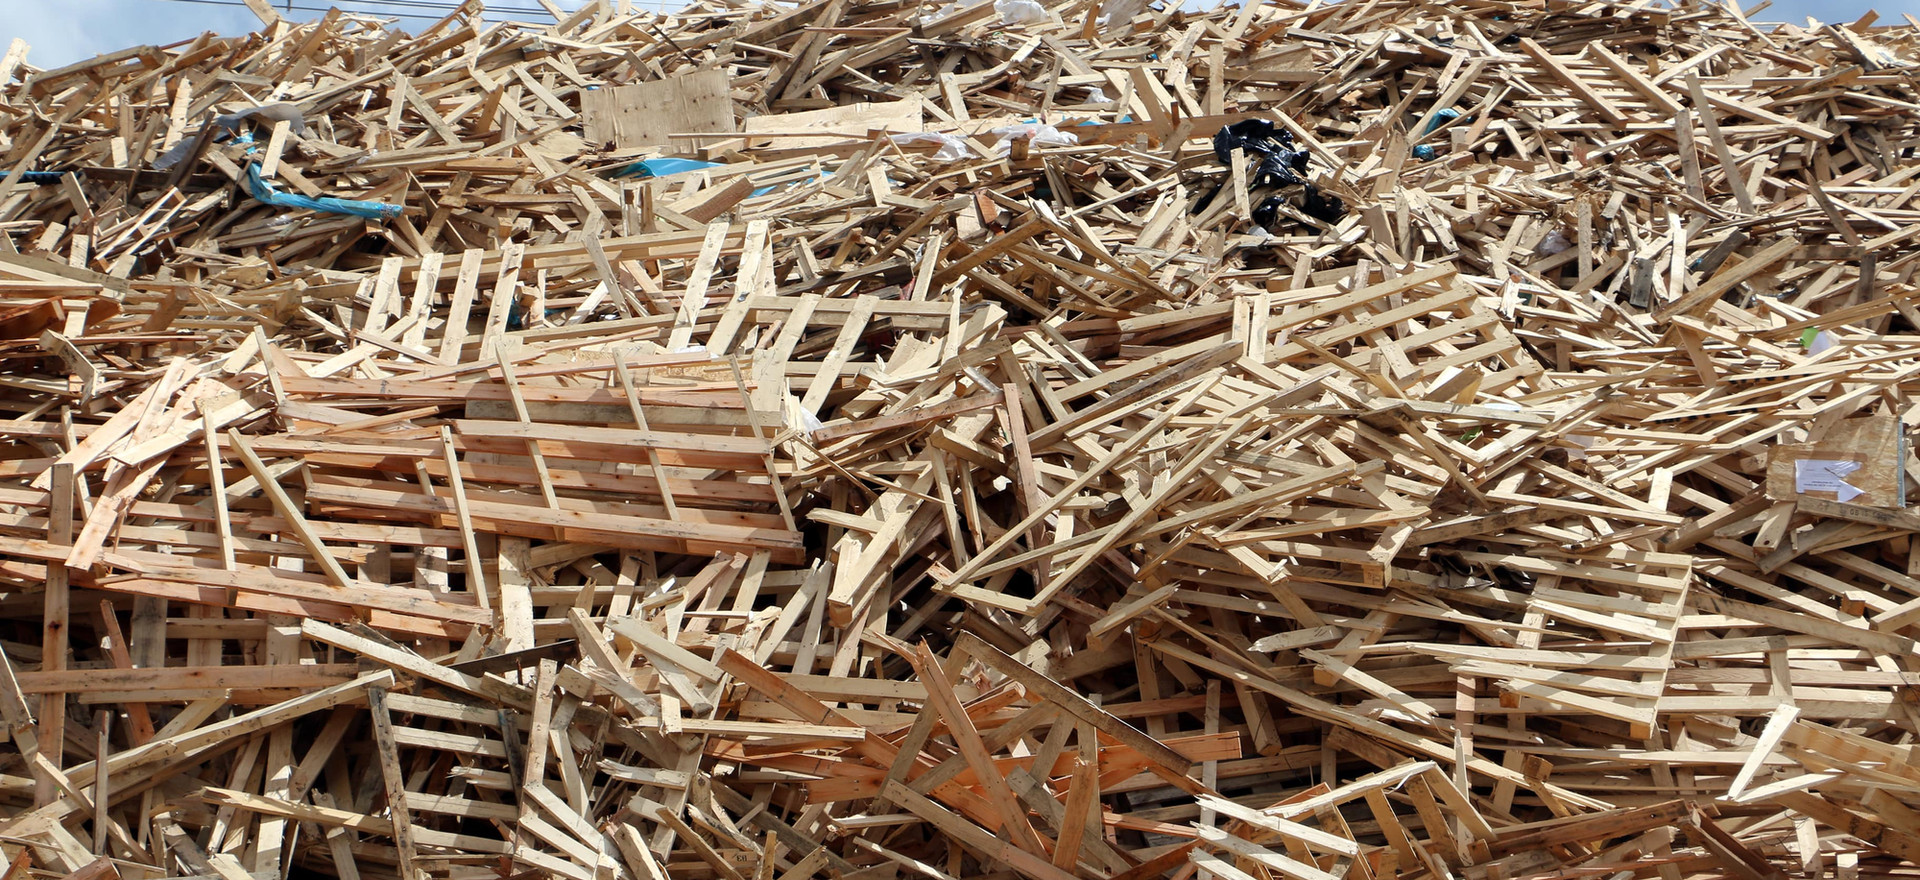 Don't Let Waste Pallets Get Out of Control!